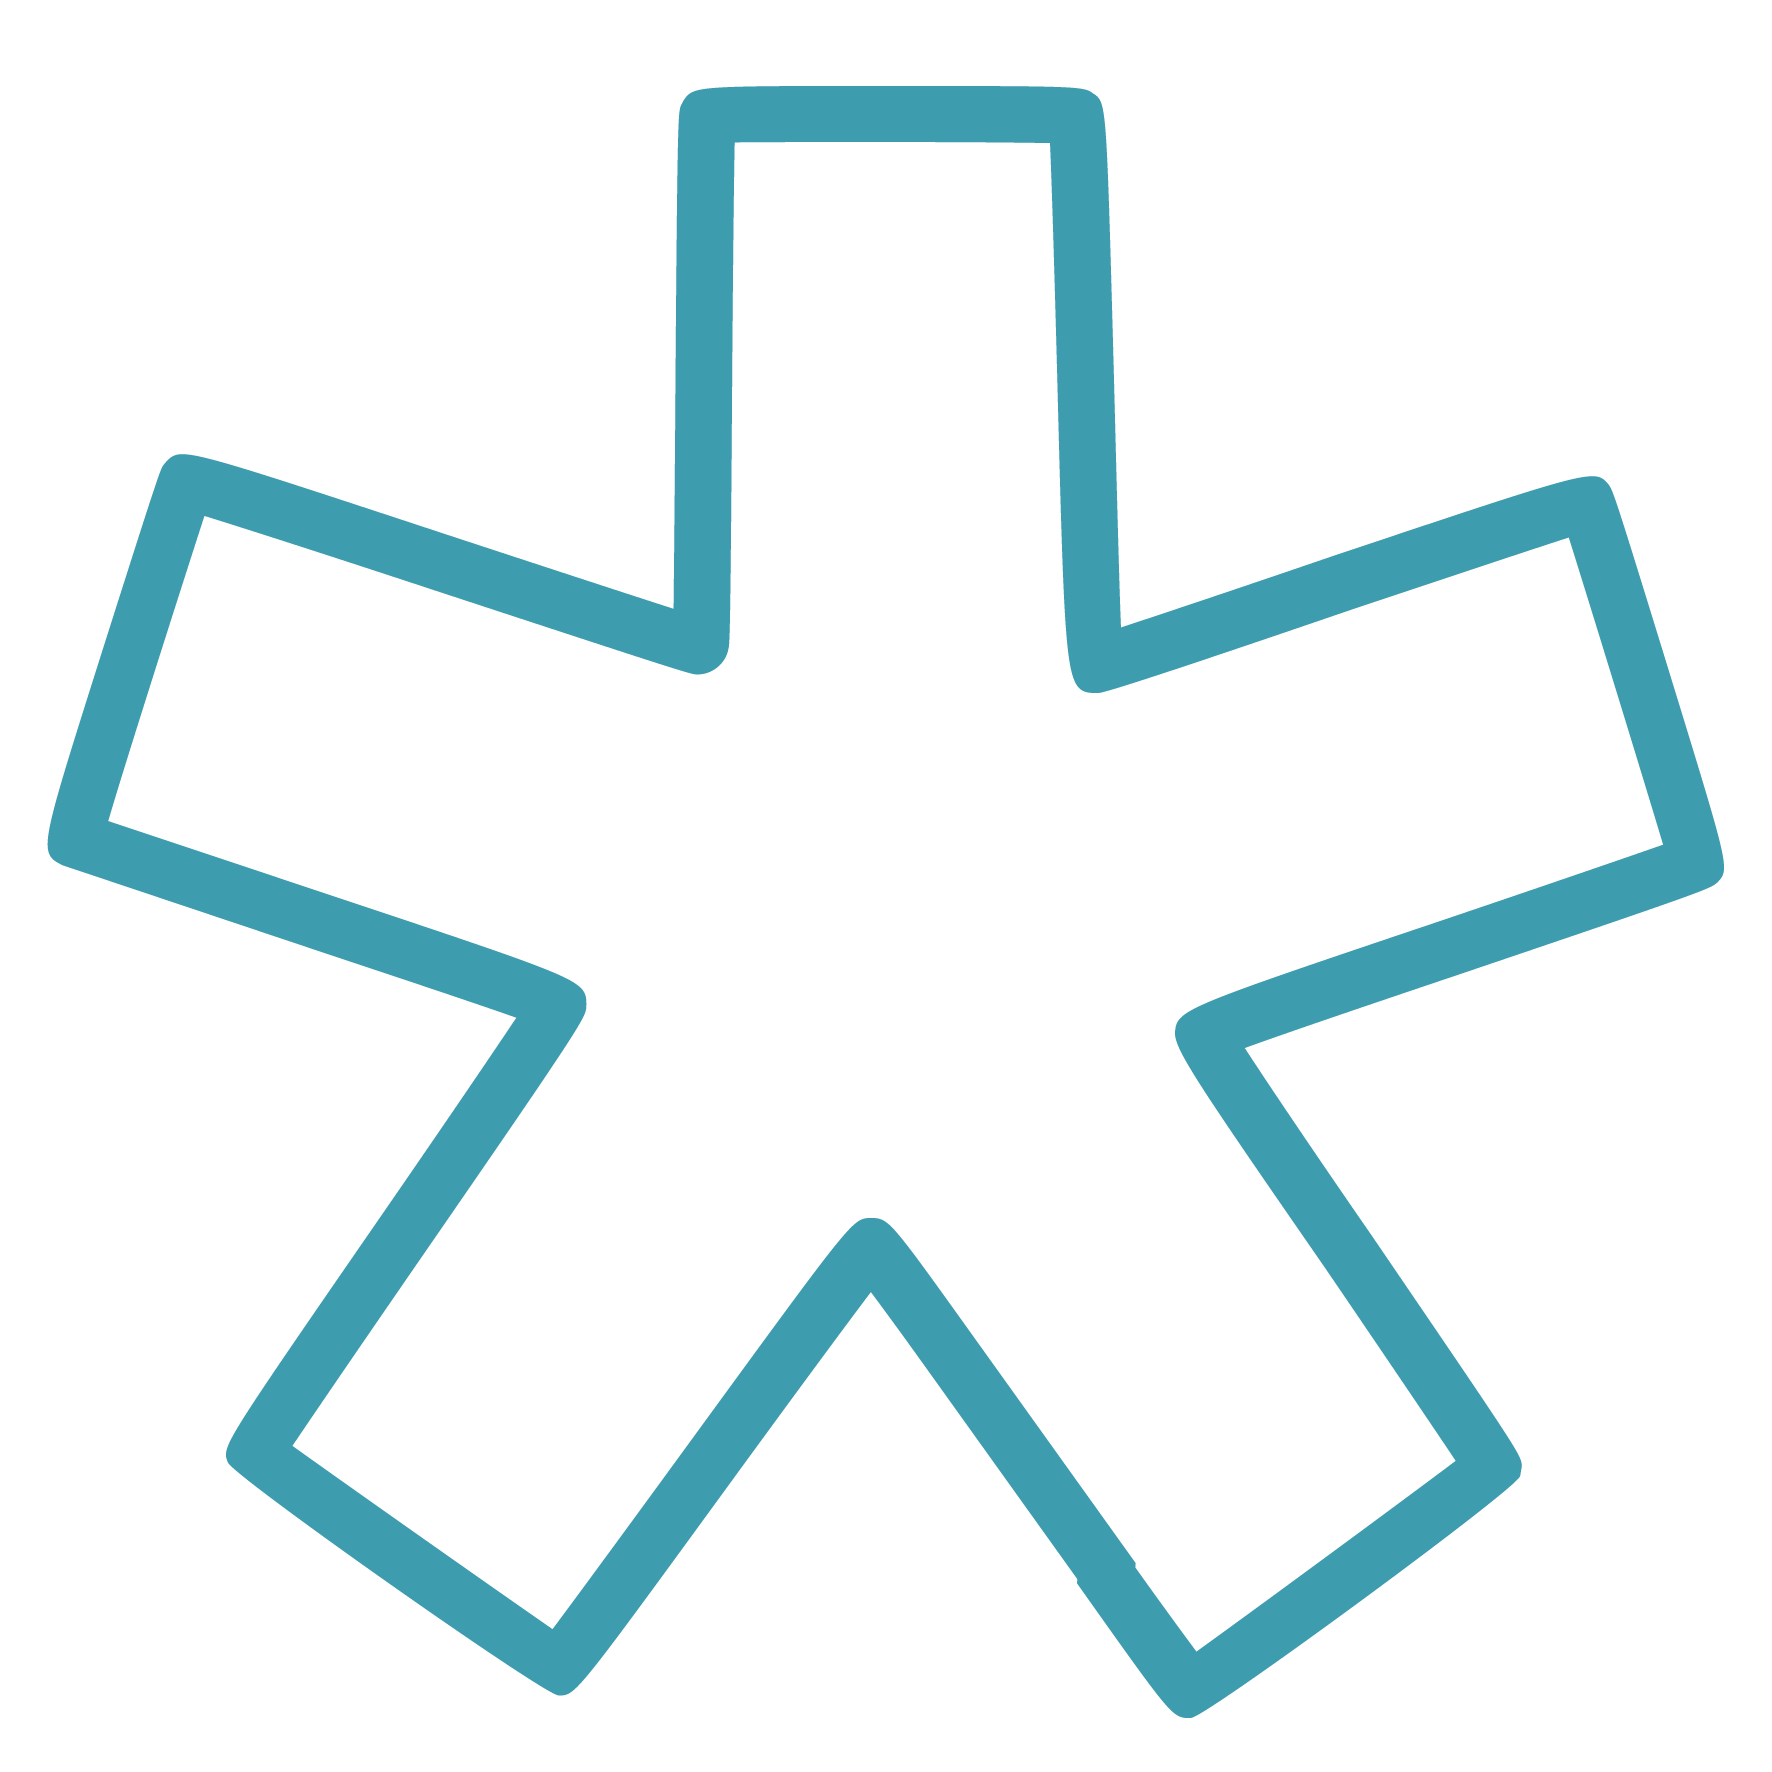 Blueprint_icons-02.png